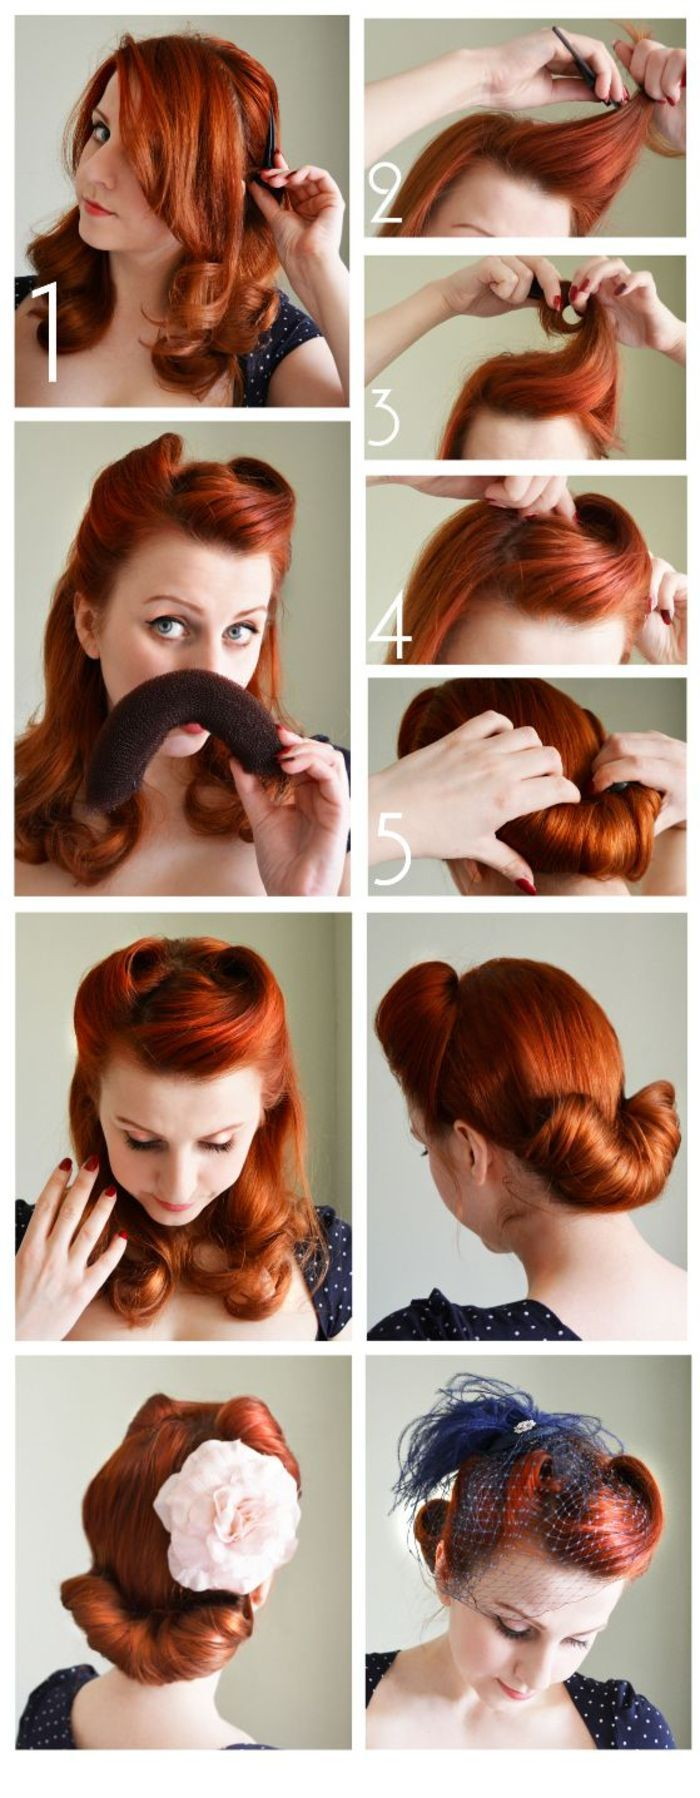 The rockabilly hairstyle by the look of the modern woman